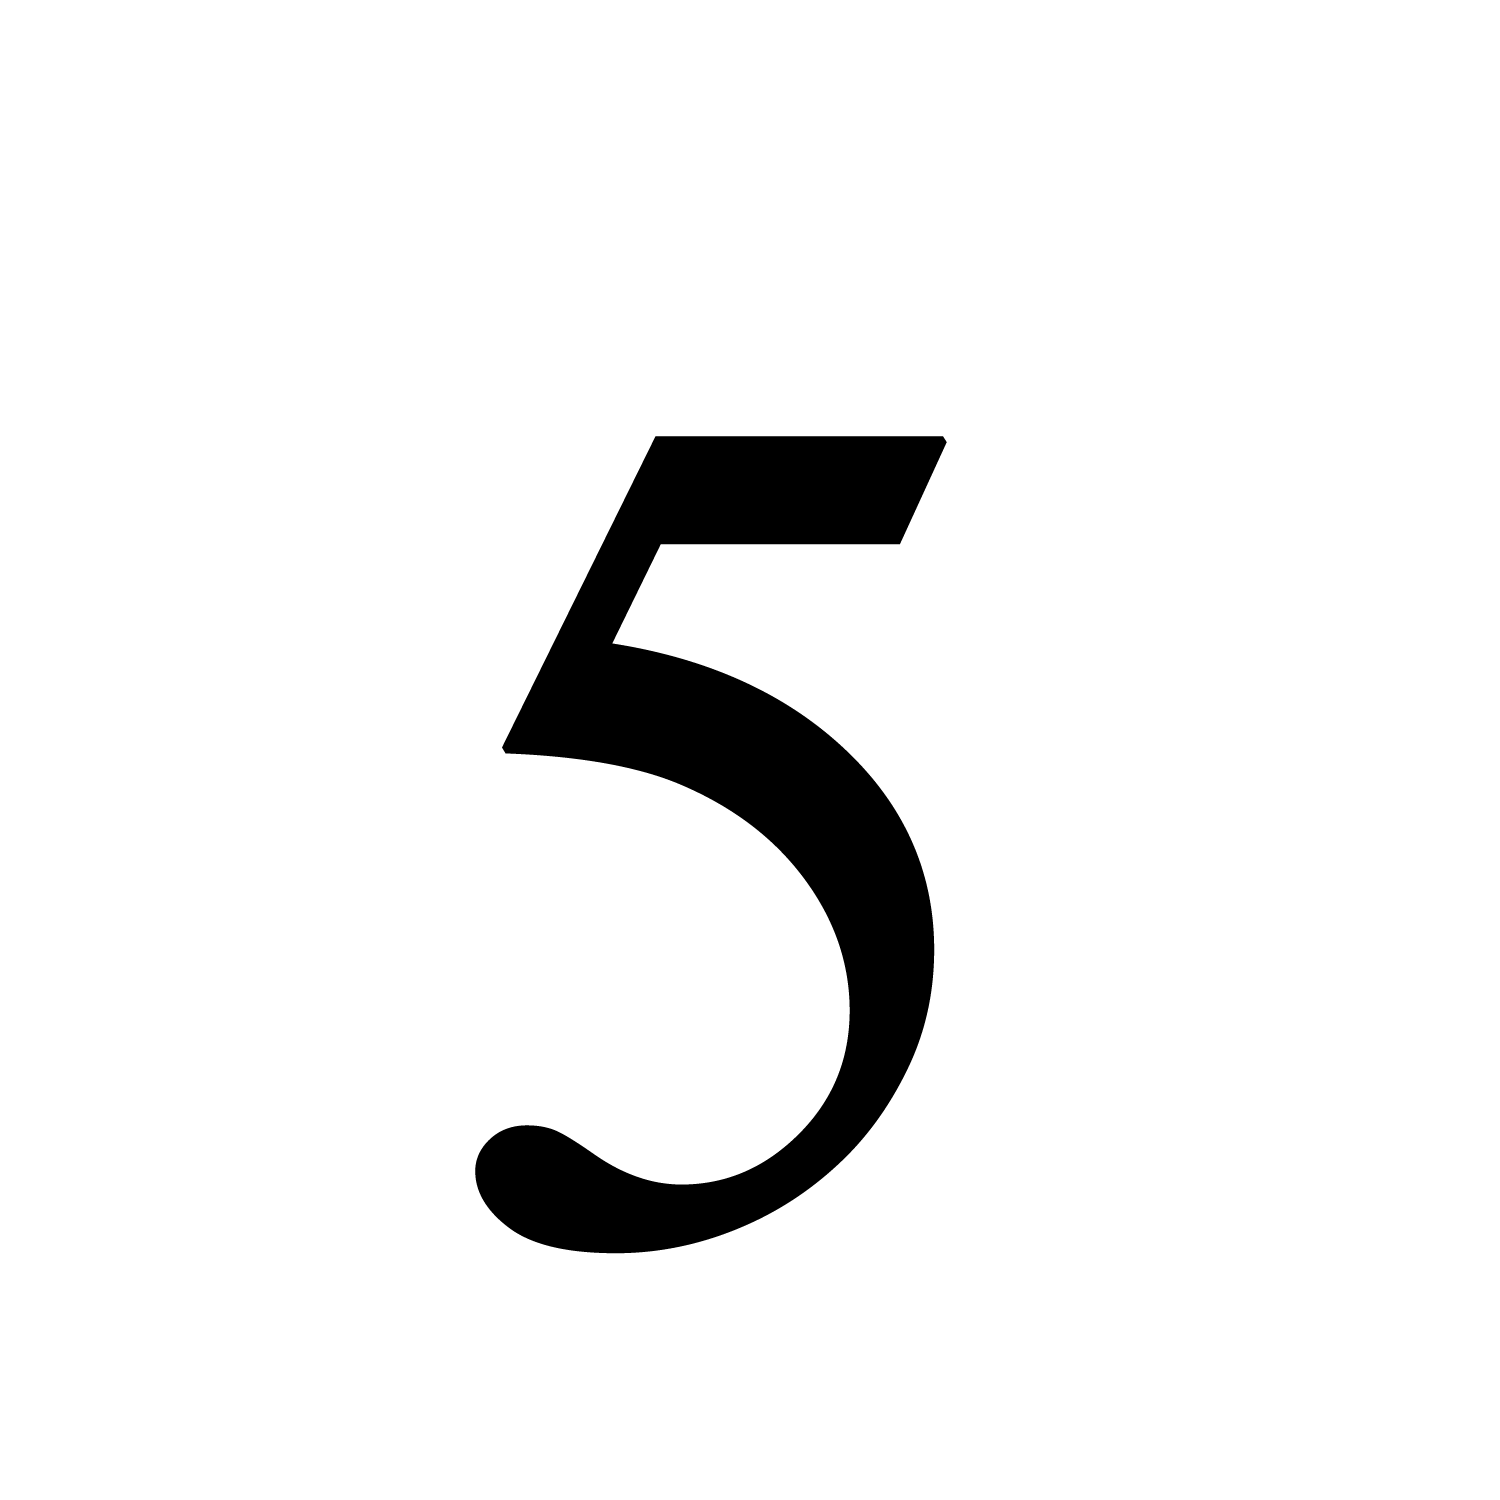 Picture Of The Number 5 Printable 101 Printable